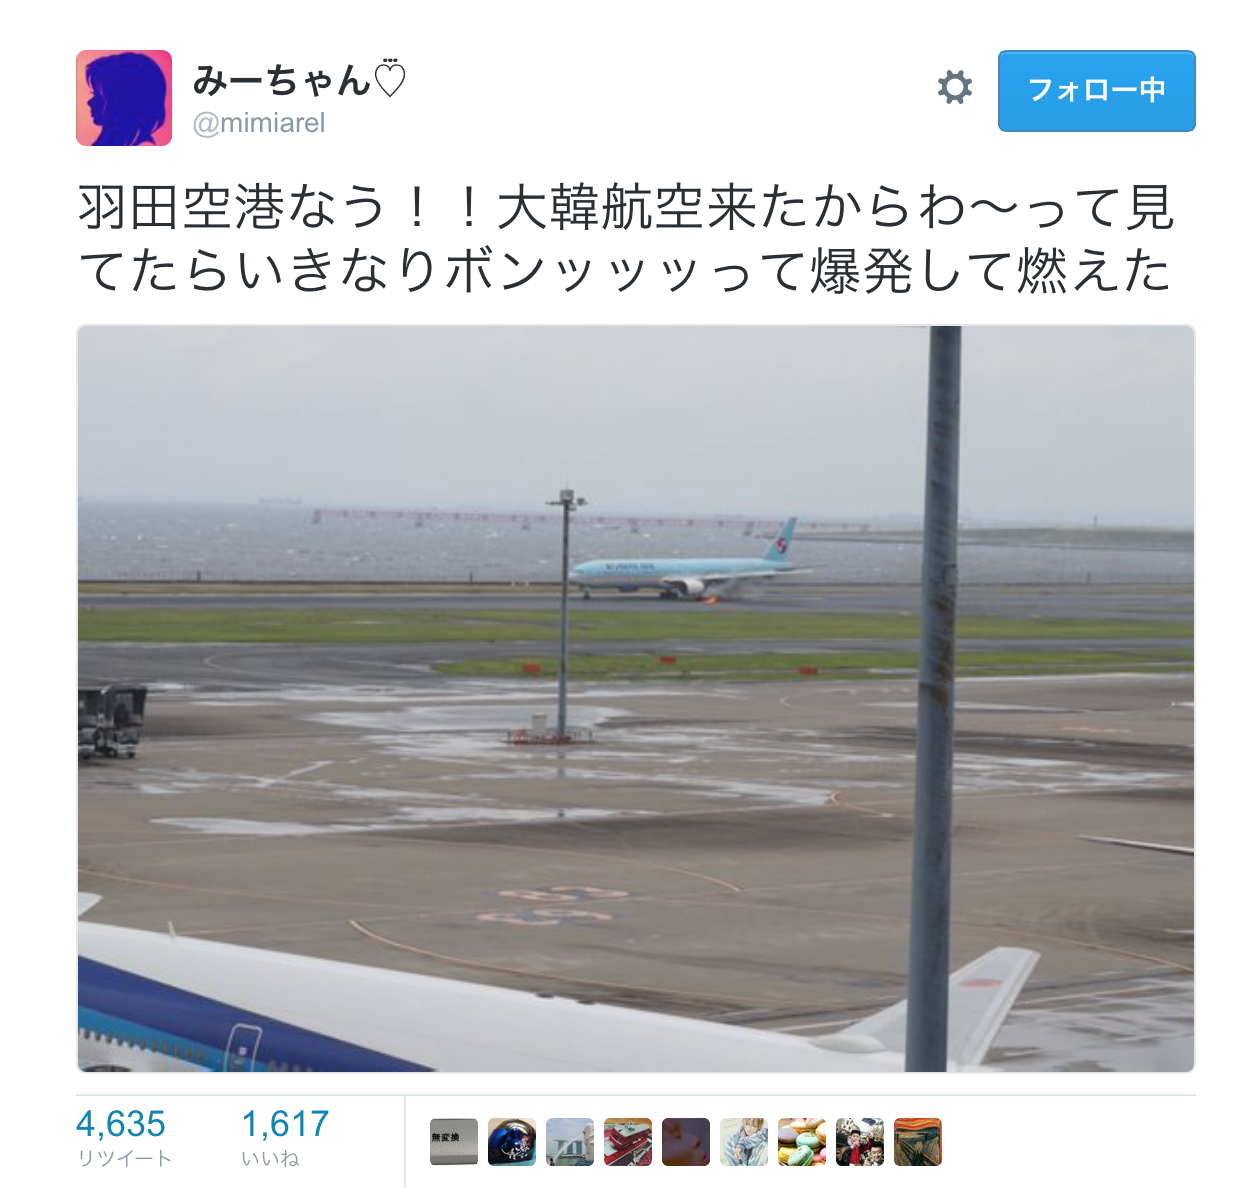 Labels Japan News Many Voices Of Whether Japan S Empty Engine Fire Incident Of Traffic Was